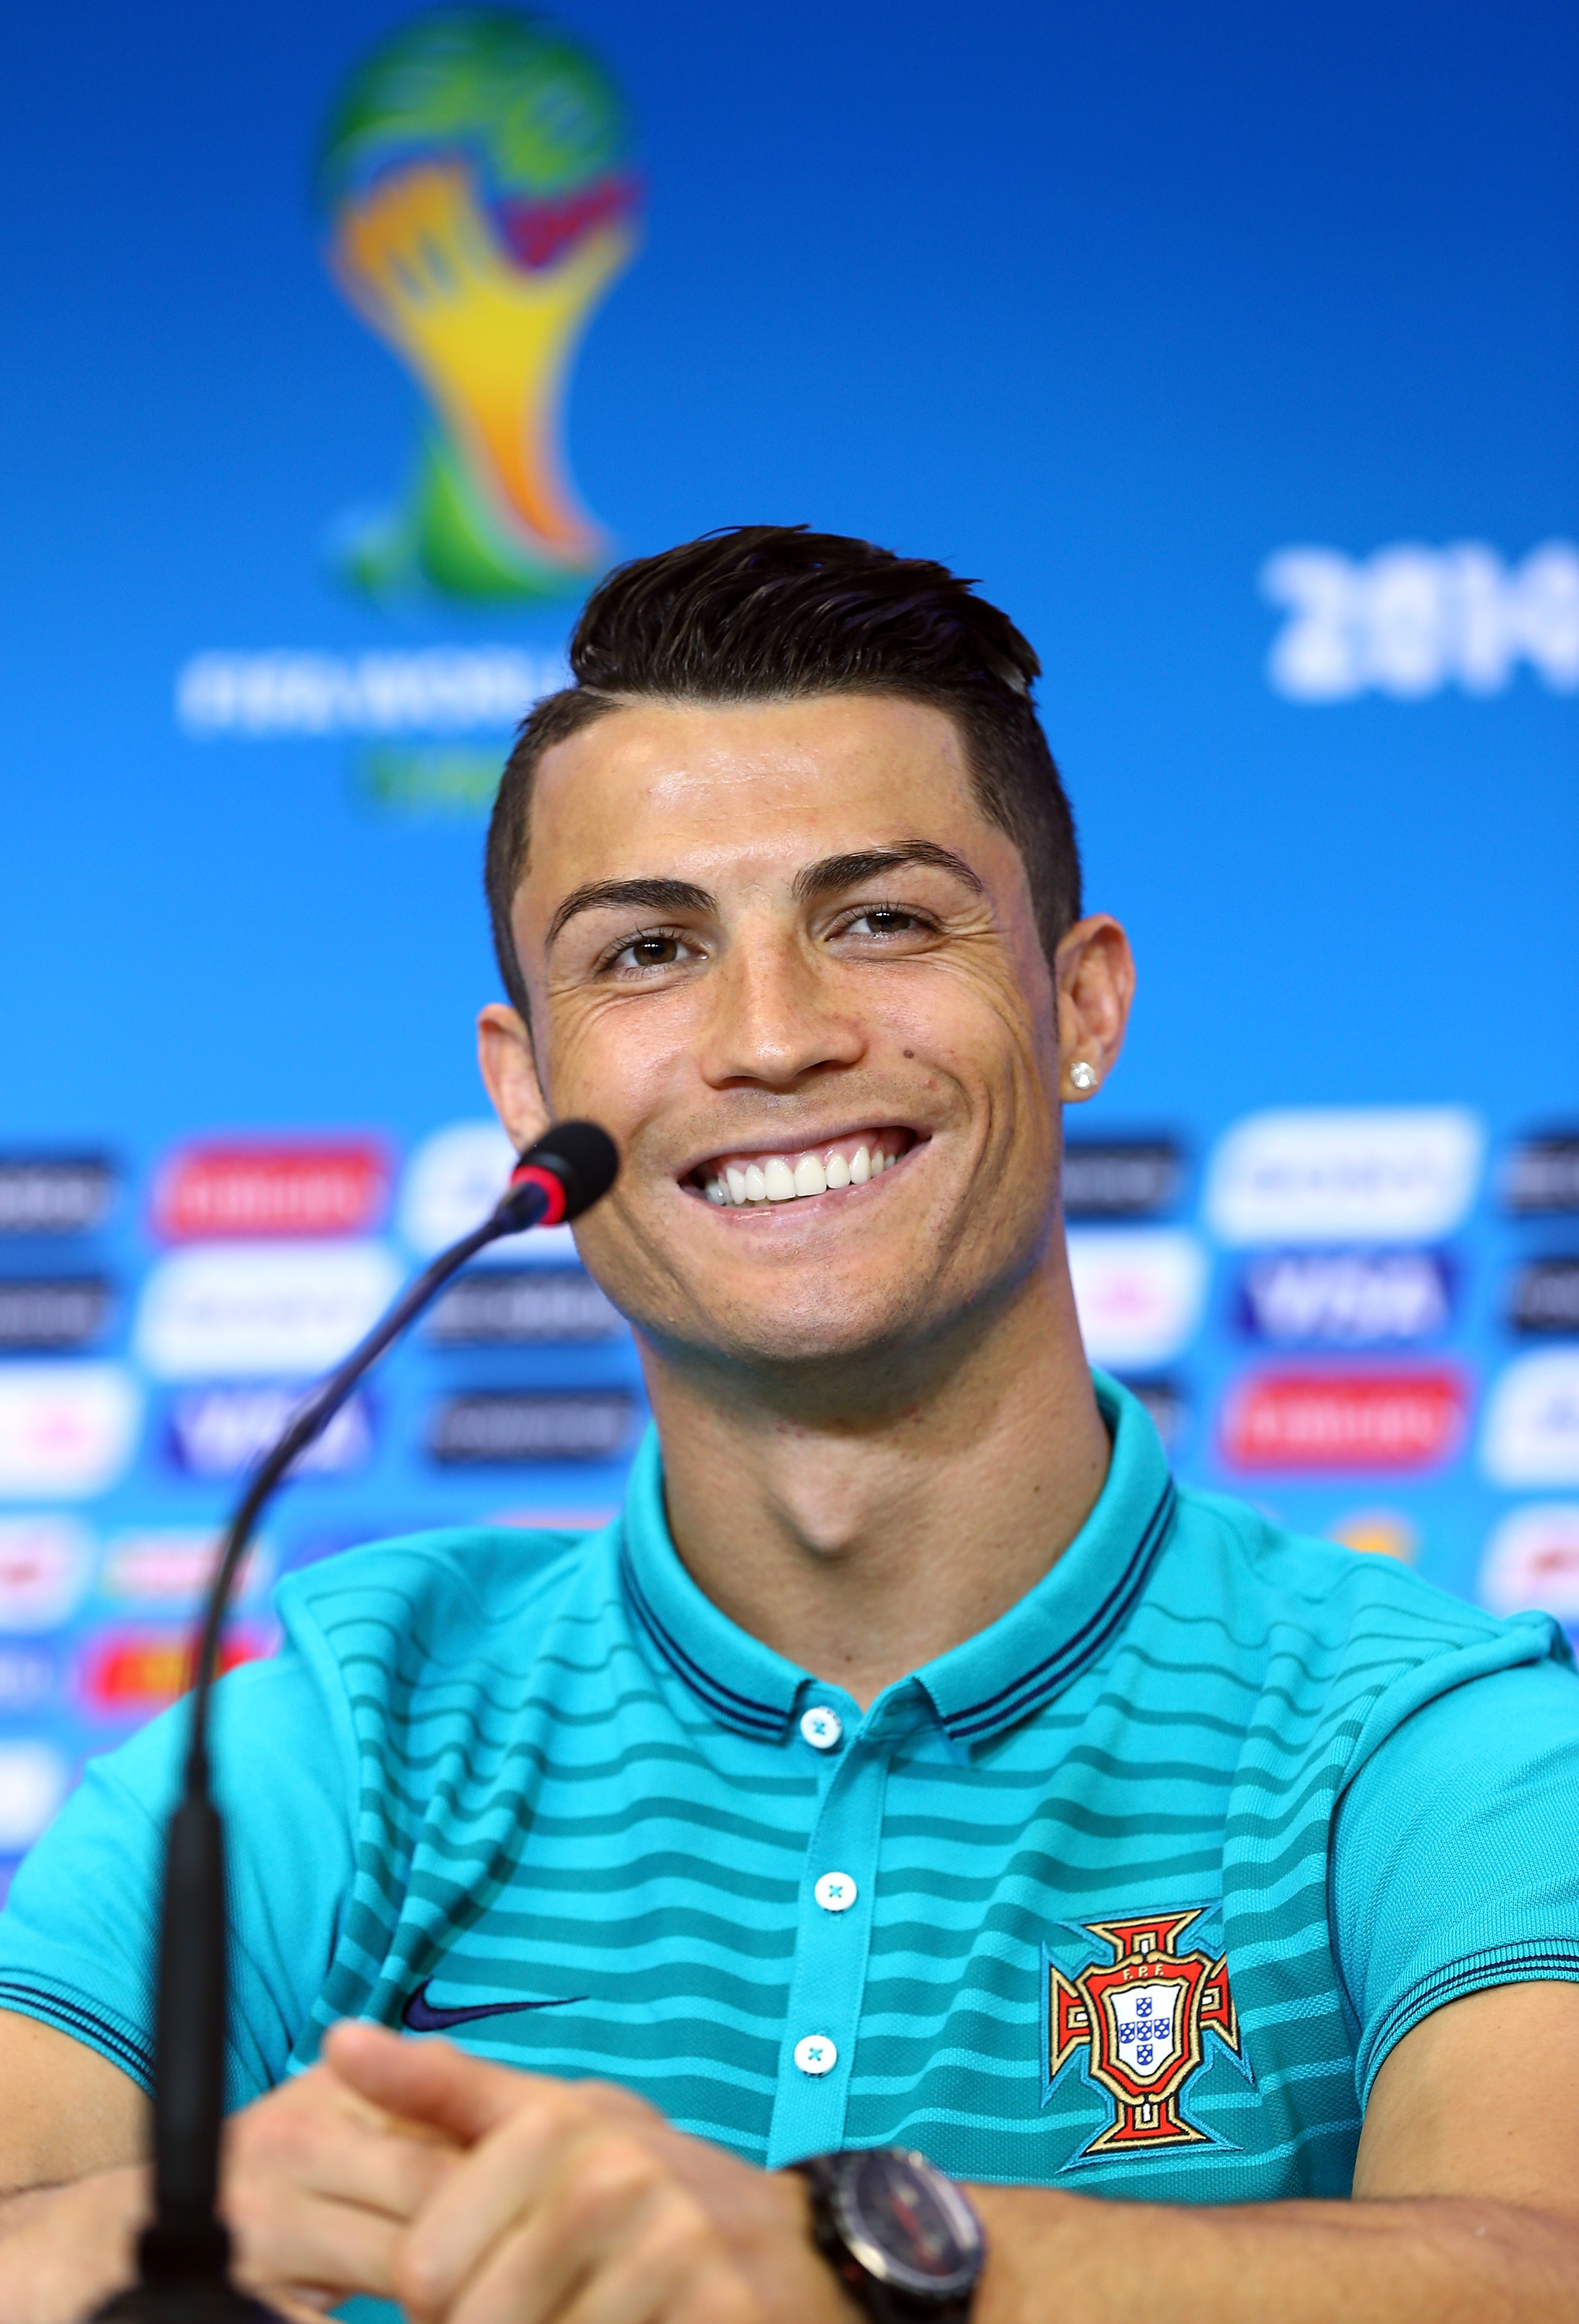 SALVADOR, BRAZIL - JUNE 15: Cristiano Ronaldo talks to the media during the Portugal press conference ahead of the 2014 FIFA World Cup Group G match between Germany and Portugal held at the Arena Fonte Novaon June 15, 2014 in Salvador, Brazil. (Photo by Martin Rose/Getty Images)